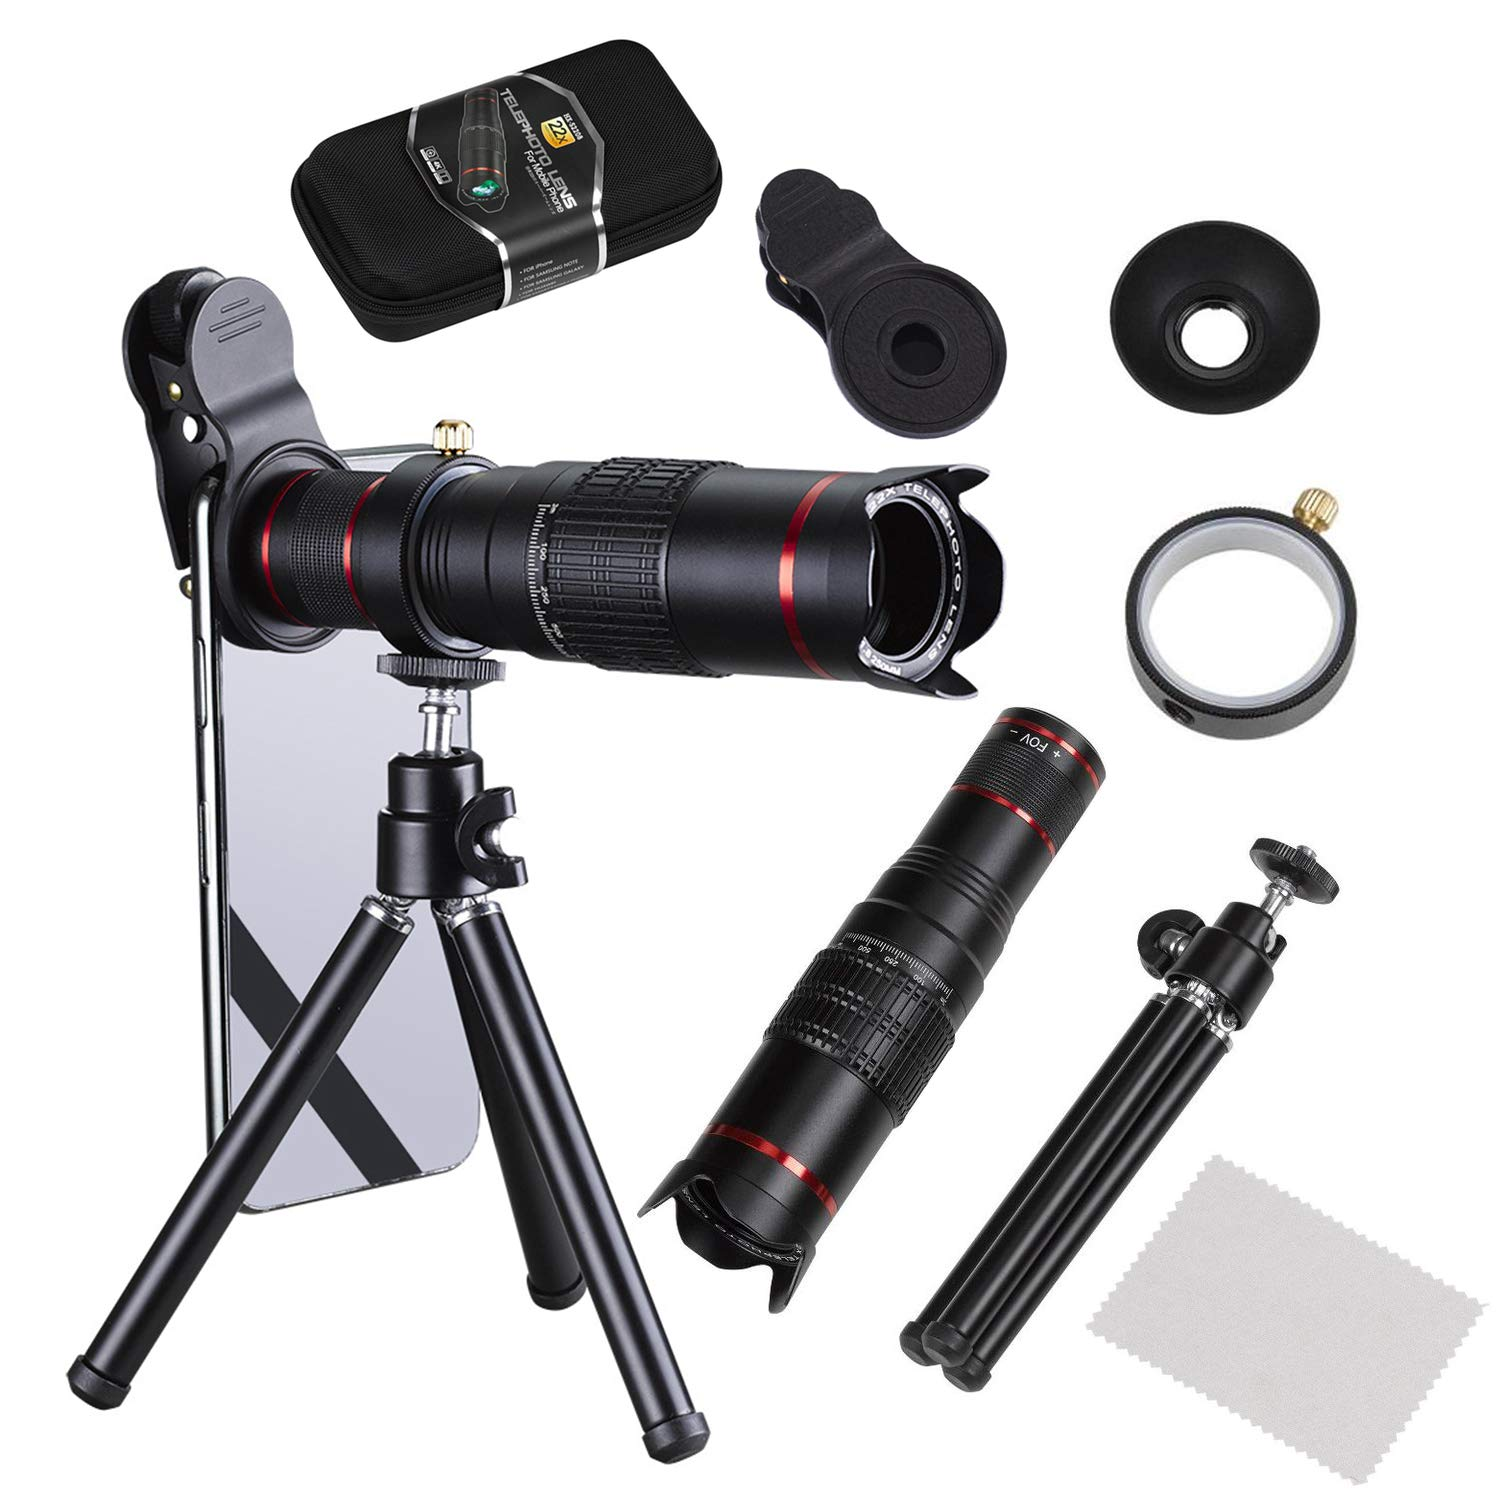 e8299ce7b76b61 Camera Lens,BECEMURU 22X Telephoto Zoom Camera Lens Kit Double Regulation  HD Scale Distance FOV Phone Lens Attachment with Tripod for iPhone X/8/7/7  ...